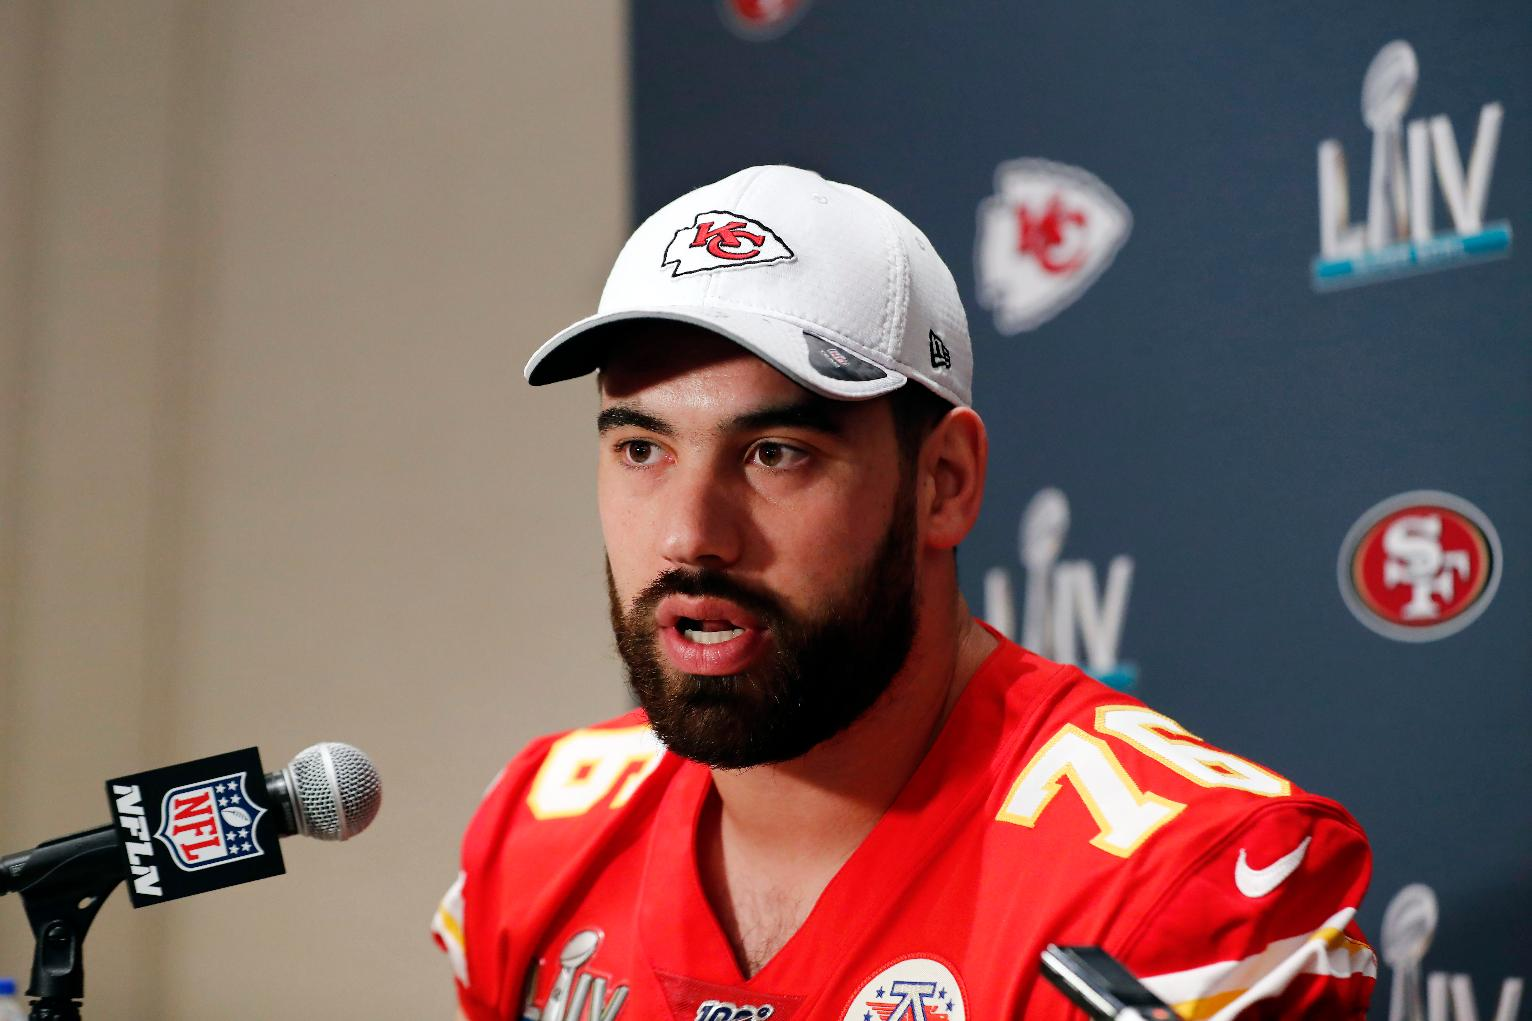 Chiefs RG Laurent Duvernay-Tardif Opts Out of NFL Season Over Coronavirus to Serve at Care Facility in Montreal